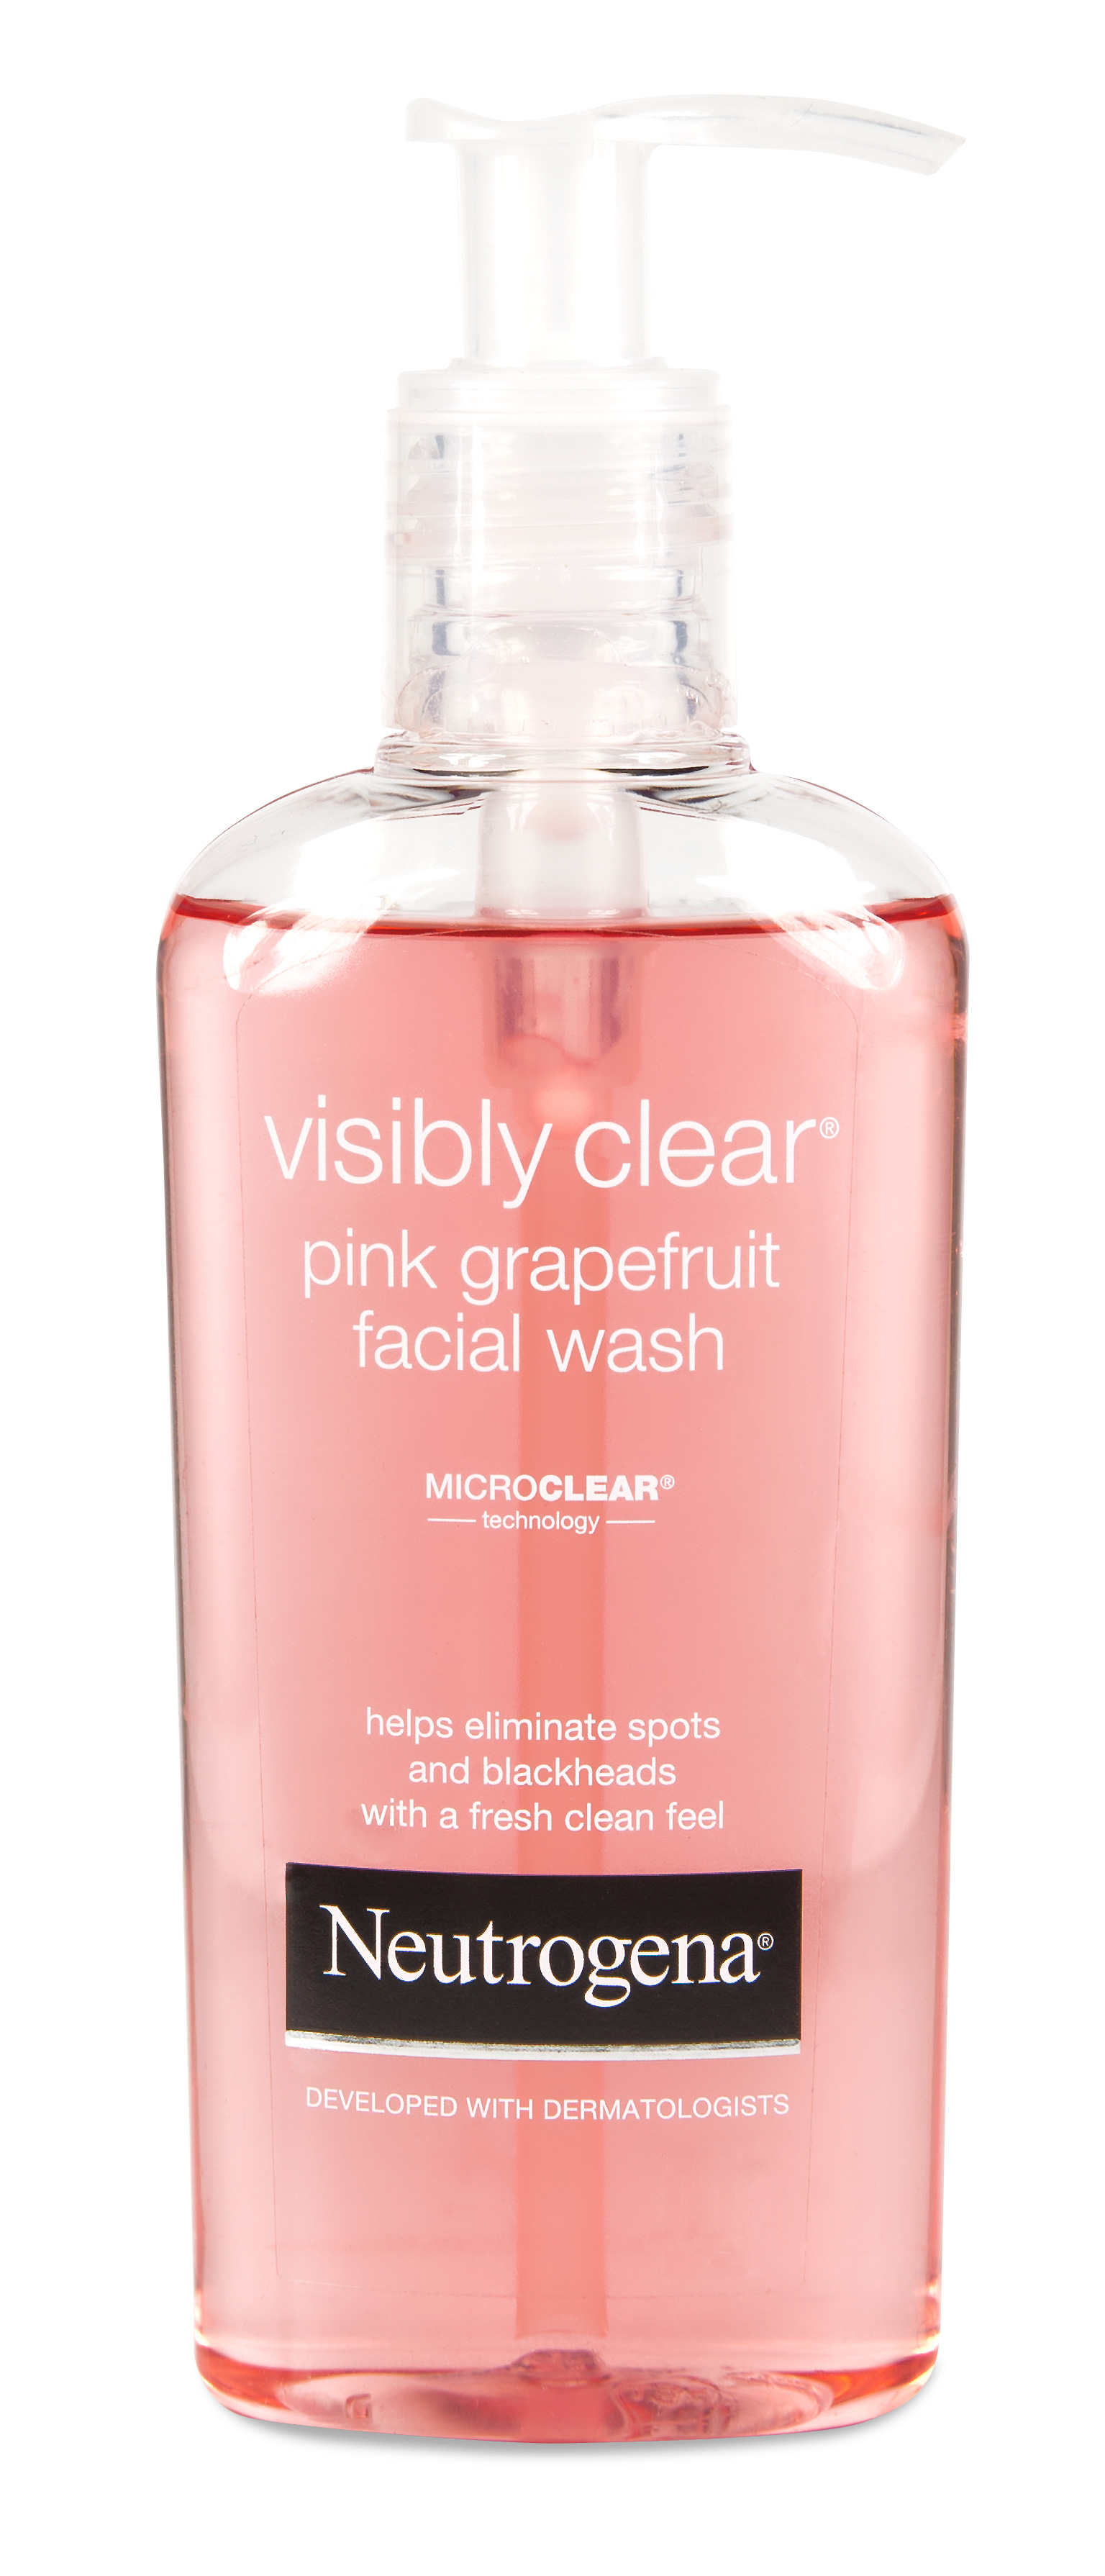 NOWY VisiblyClear PG Facial Wash bezpleckow